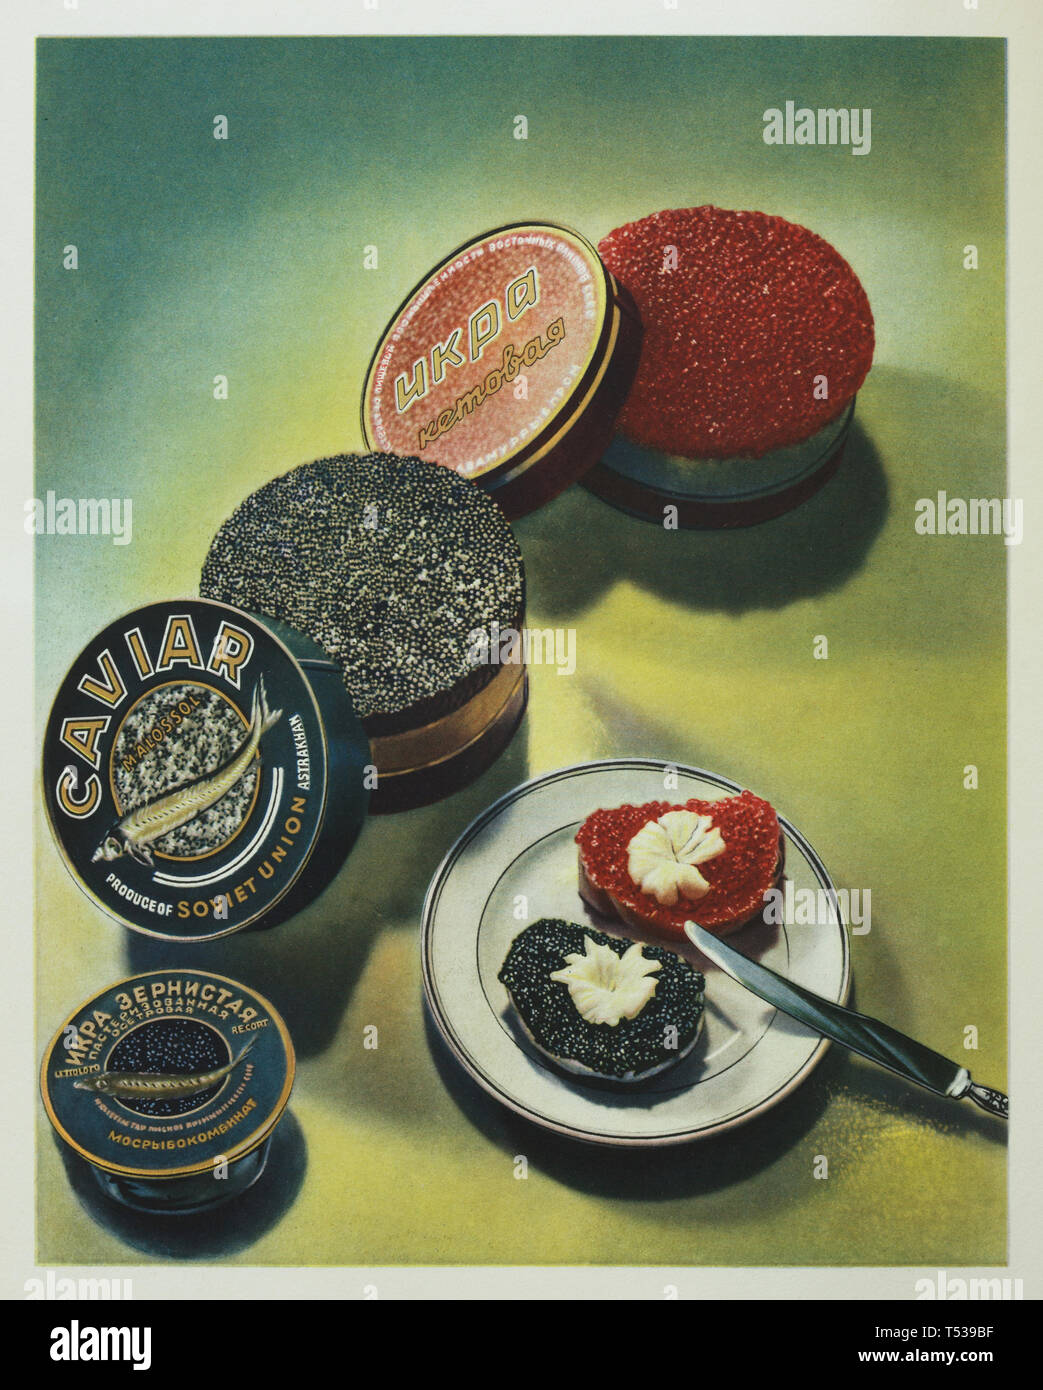 Soviet keta salmon red caviar and sturgeon black caviar depicted in the colour illustration in the Book of Tasty and Healthy Food published in the Soviet Union (1953). Stock Photo